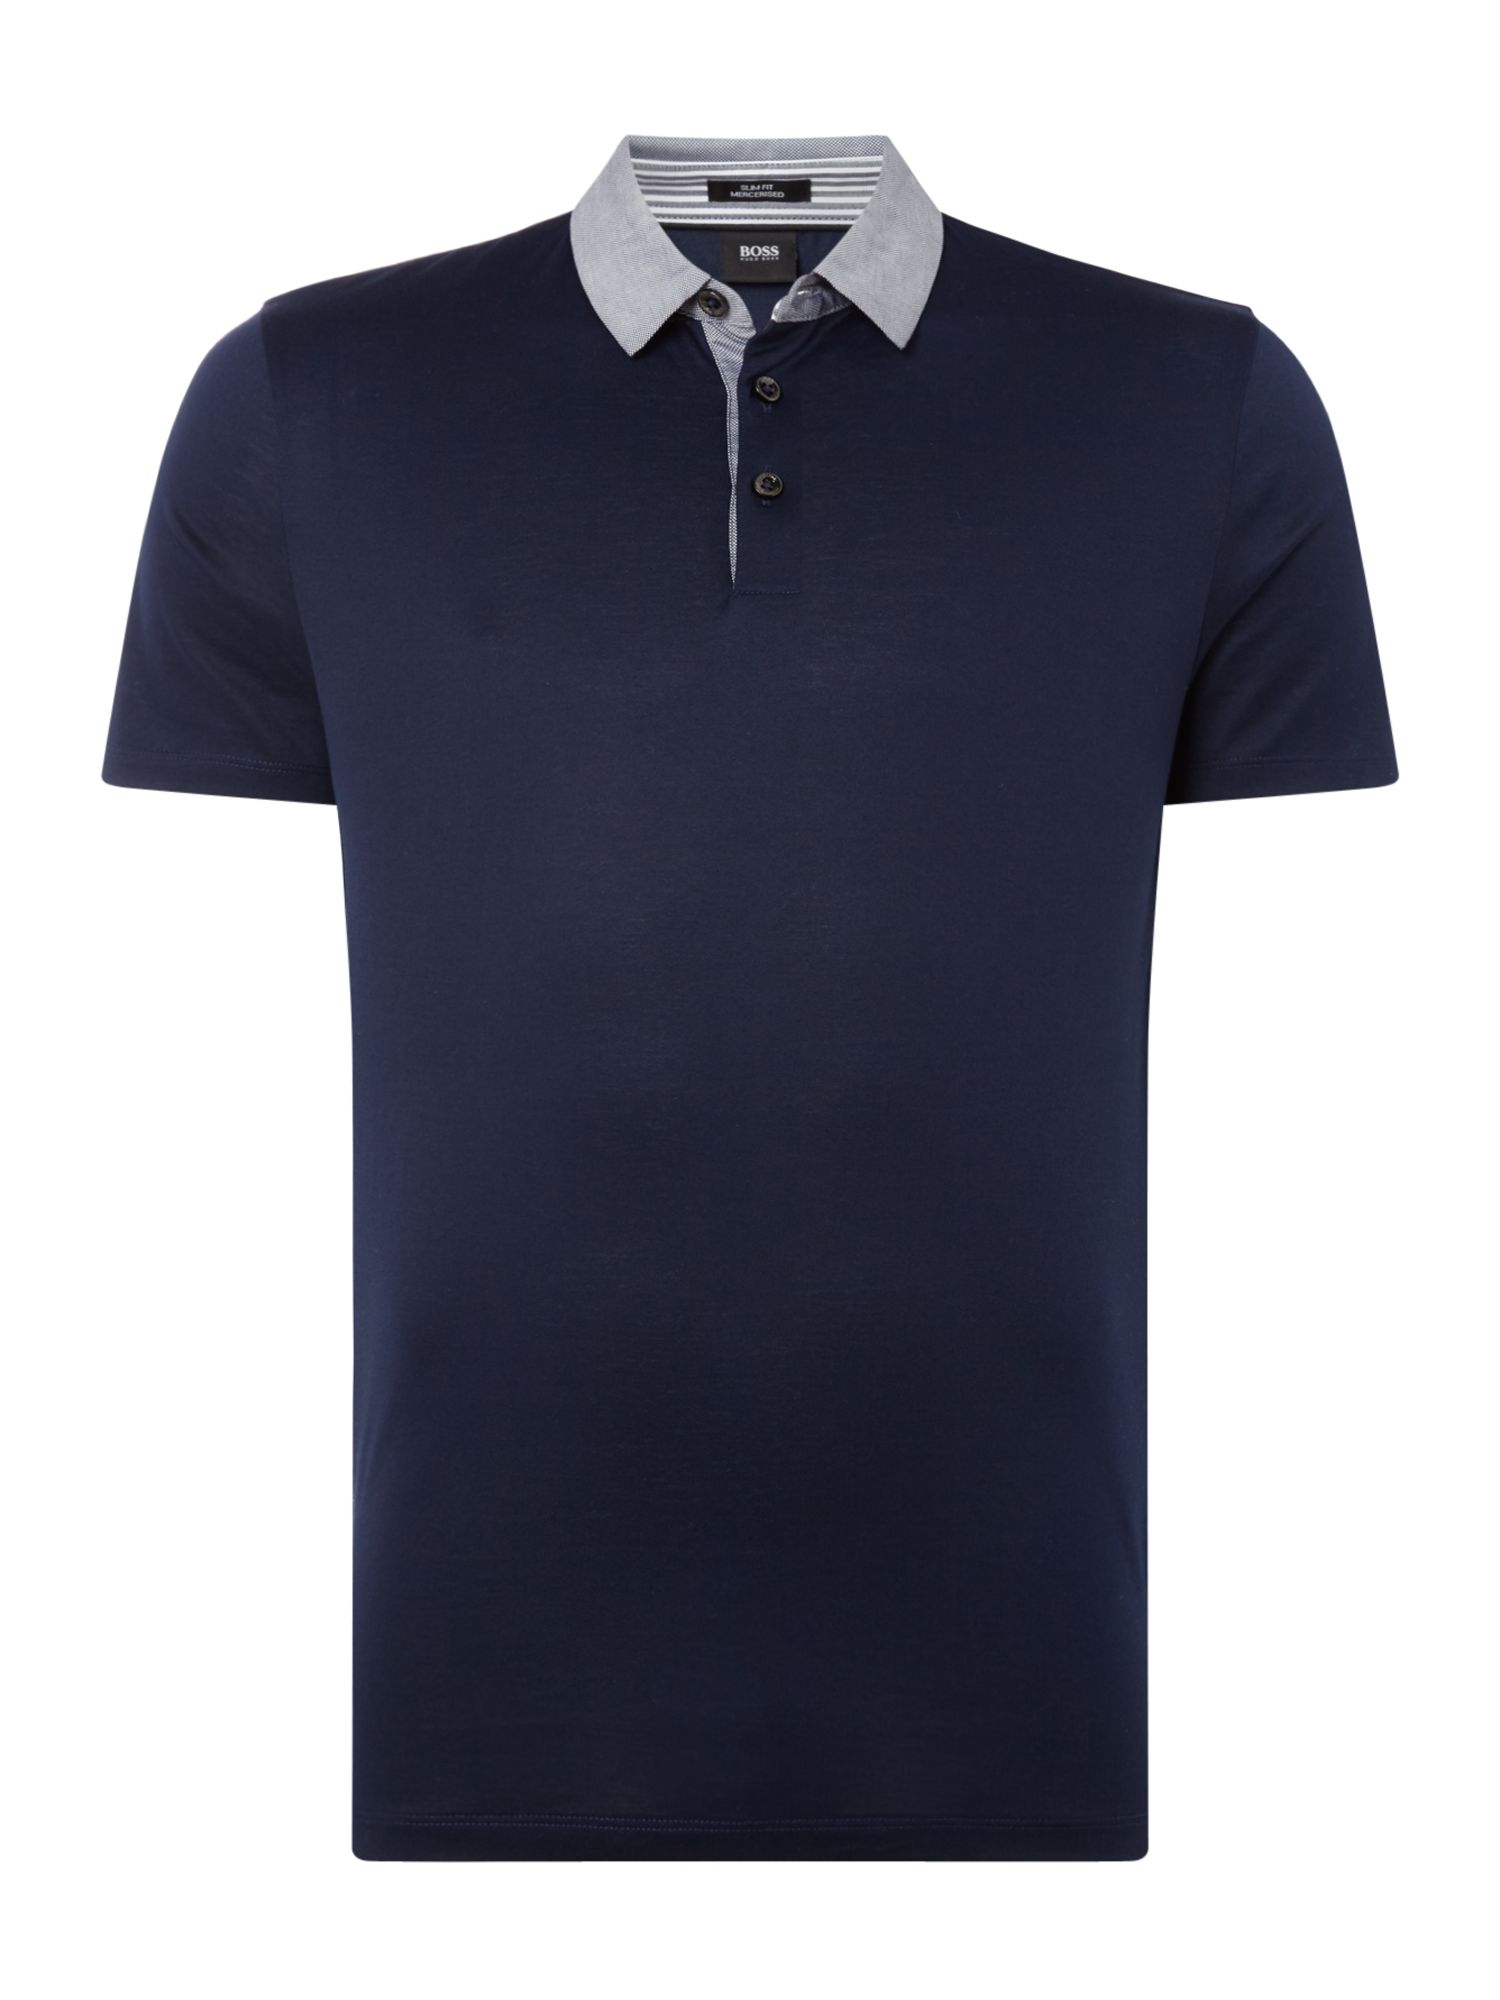 Men's Hugo Boss Mercesired Slim Fit Polo Shirt, Blue